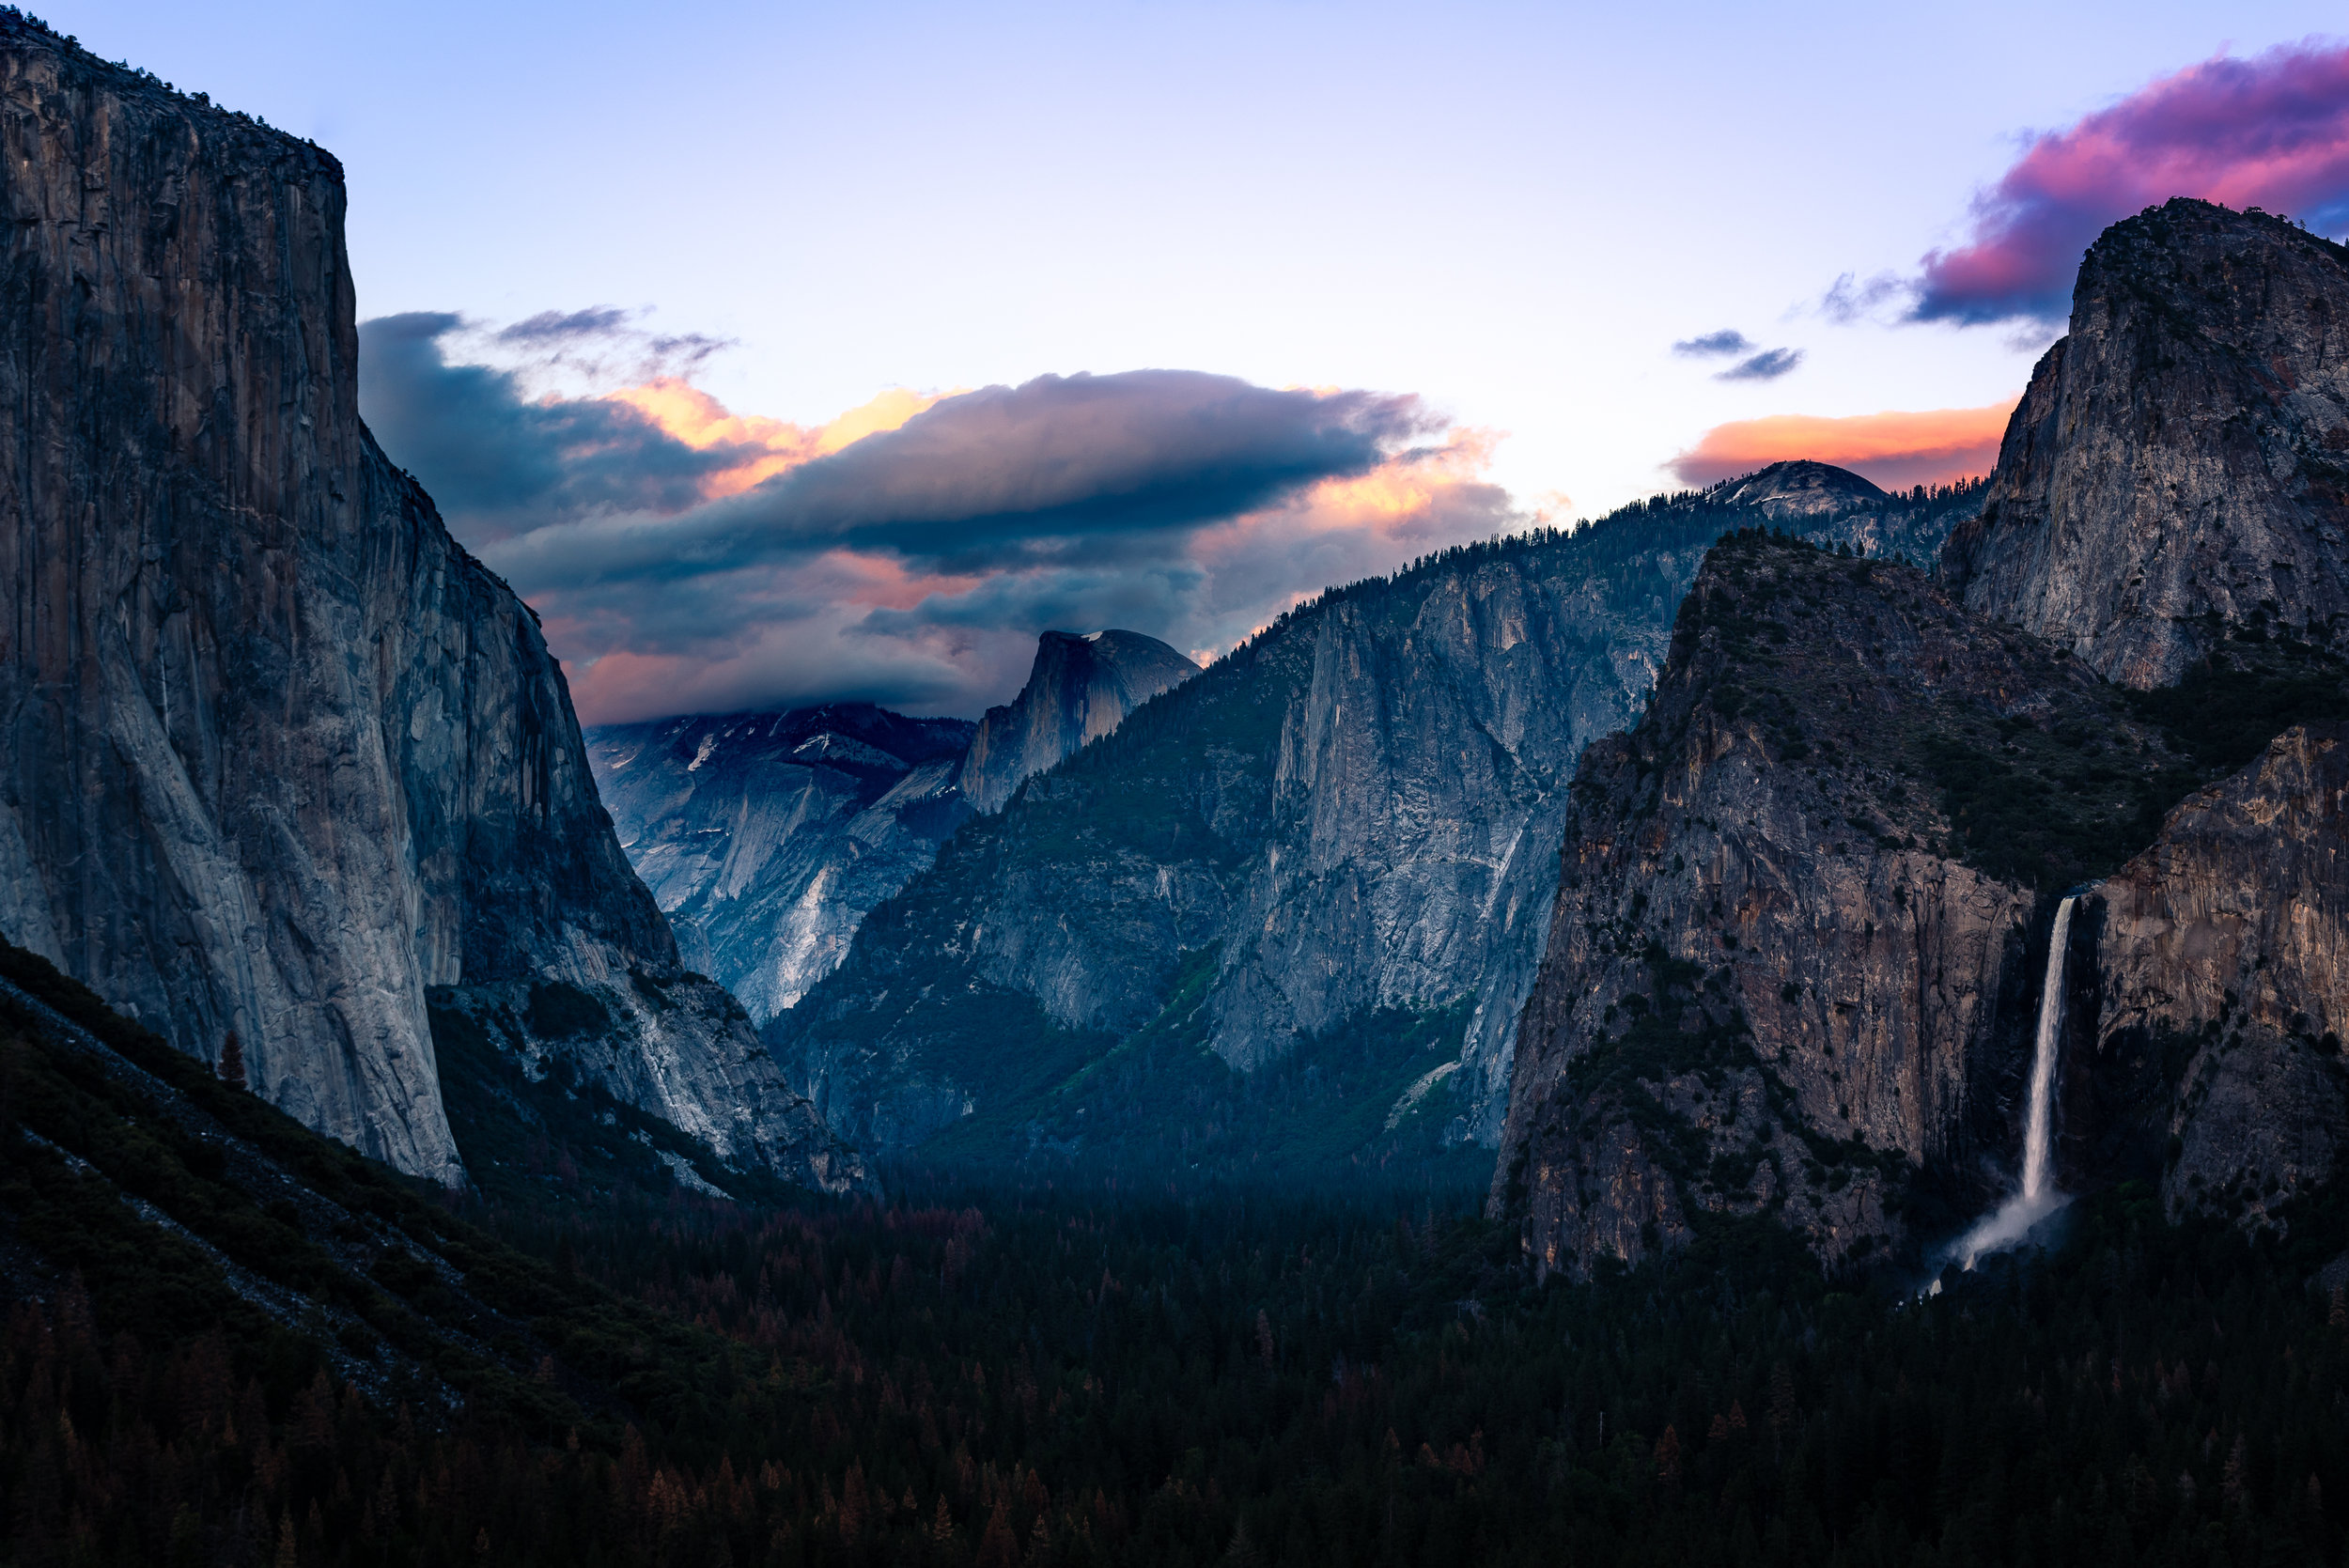 How many times have you seen an image of Yosemite?